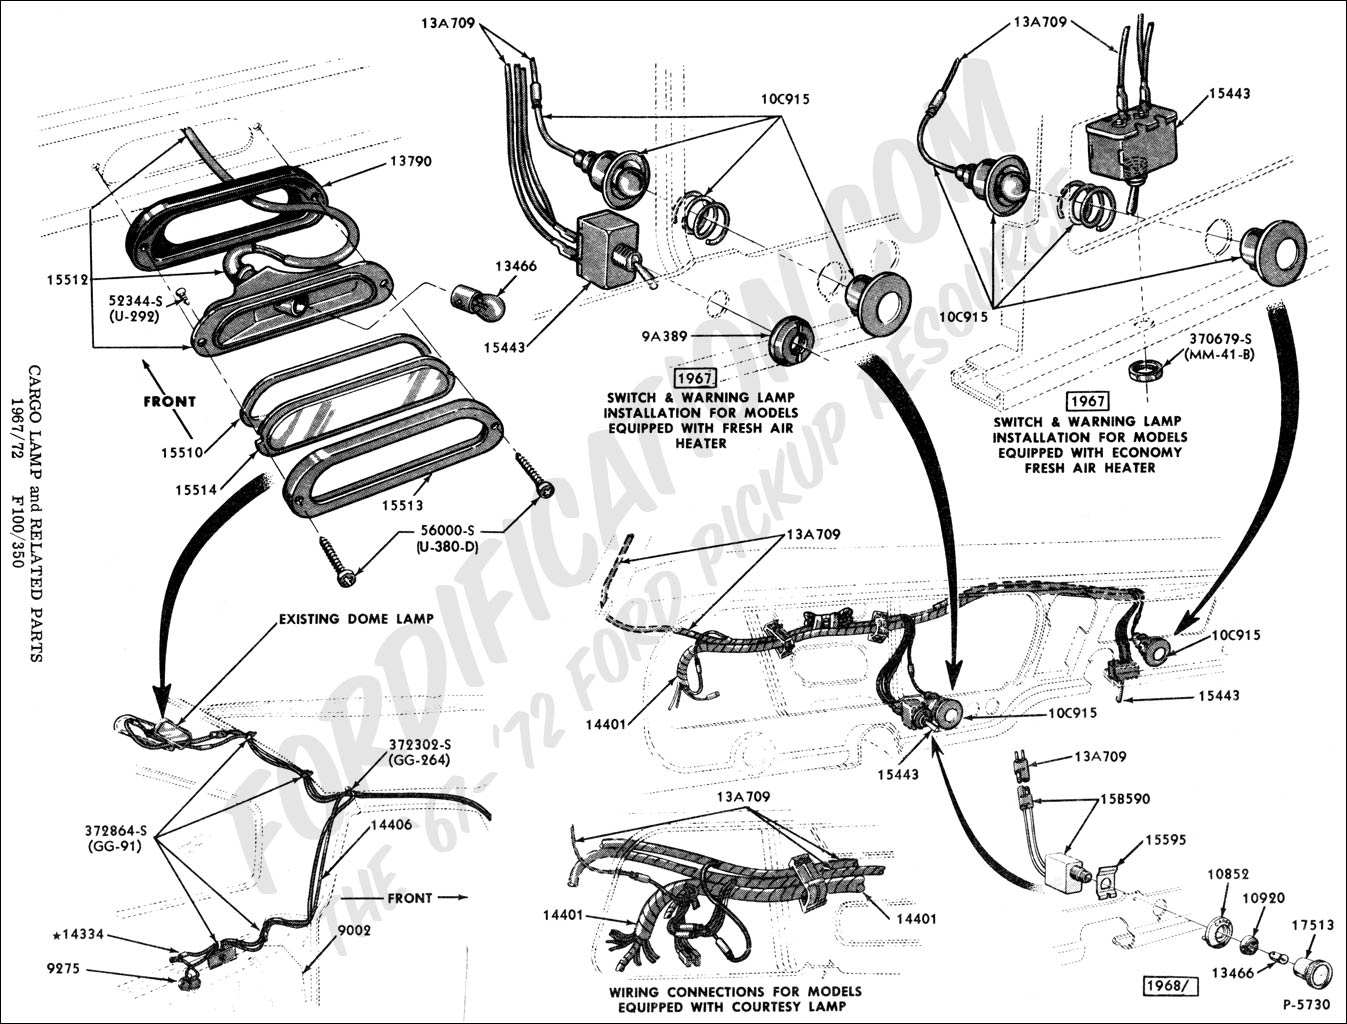 Ford Truck Technical Drawings And Schematics Section I 2000 Expedition Wiper Motor Wiring Electrical